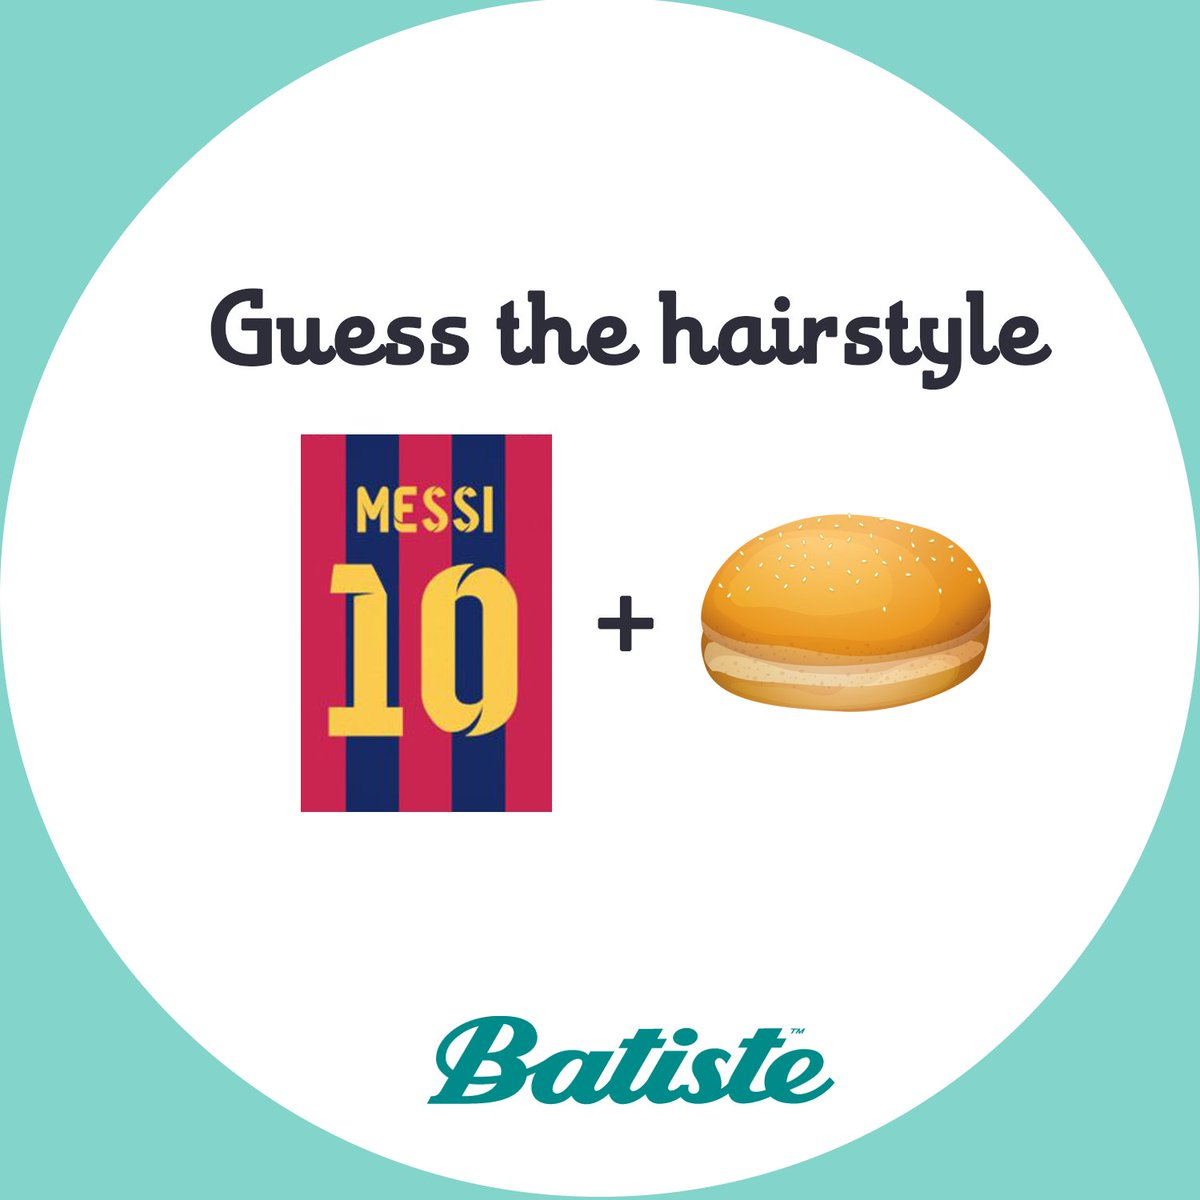 We are in the Football zone, guess this hairstyle to win #batiste goodies! #Contest #ContestAlert #dryshampoo #hairstyle #hair #haircare<br>http://pic.twitter.com/O58MpPxHlI